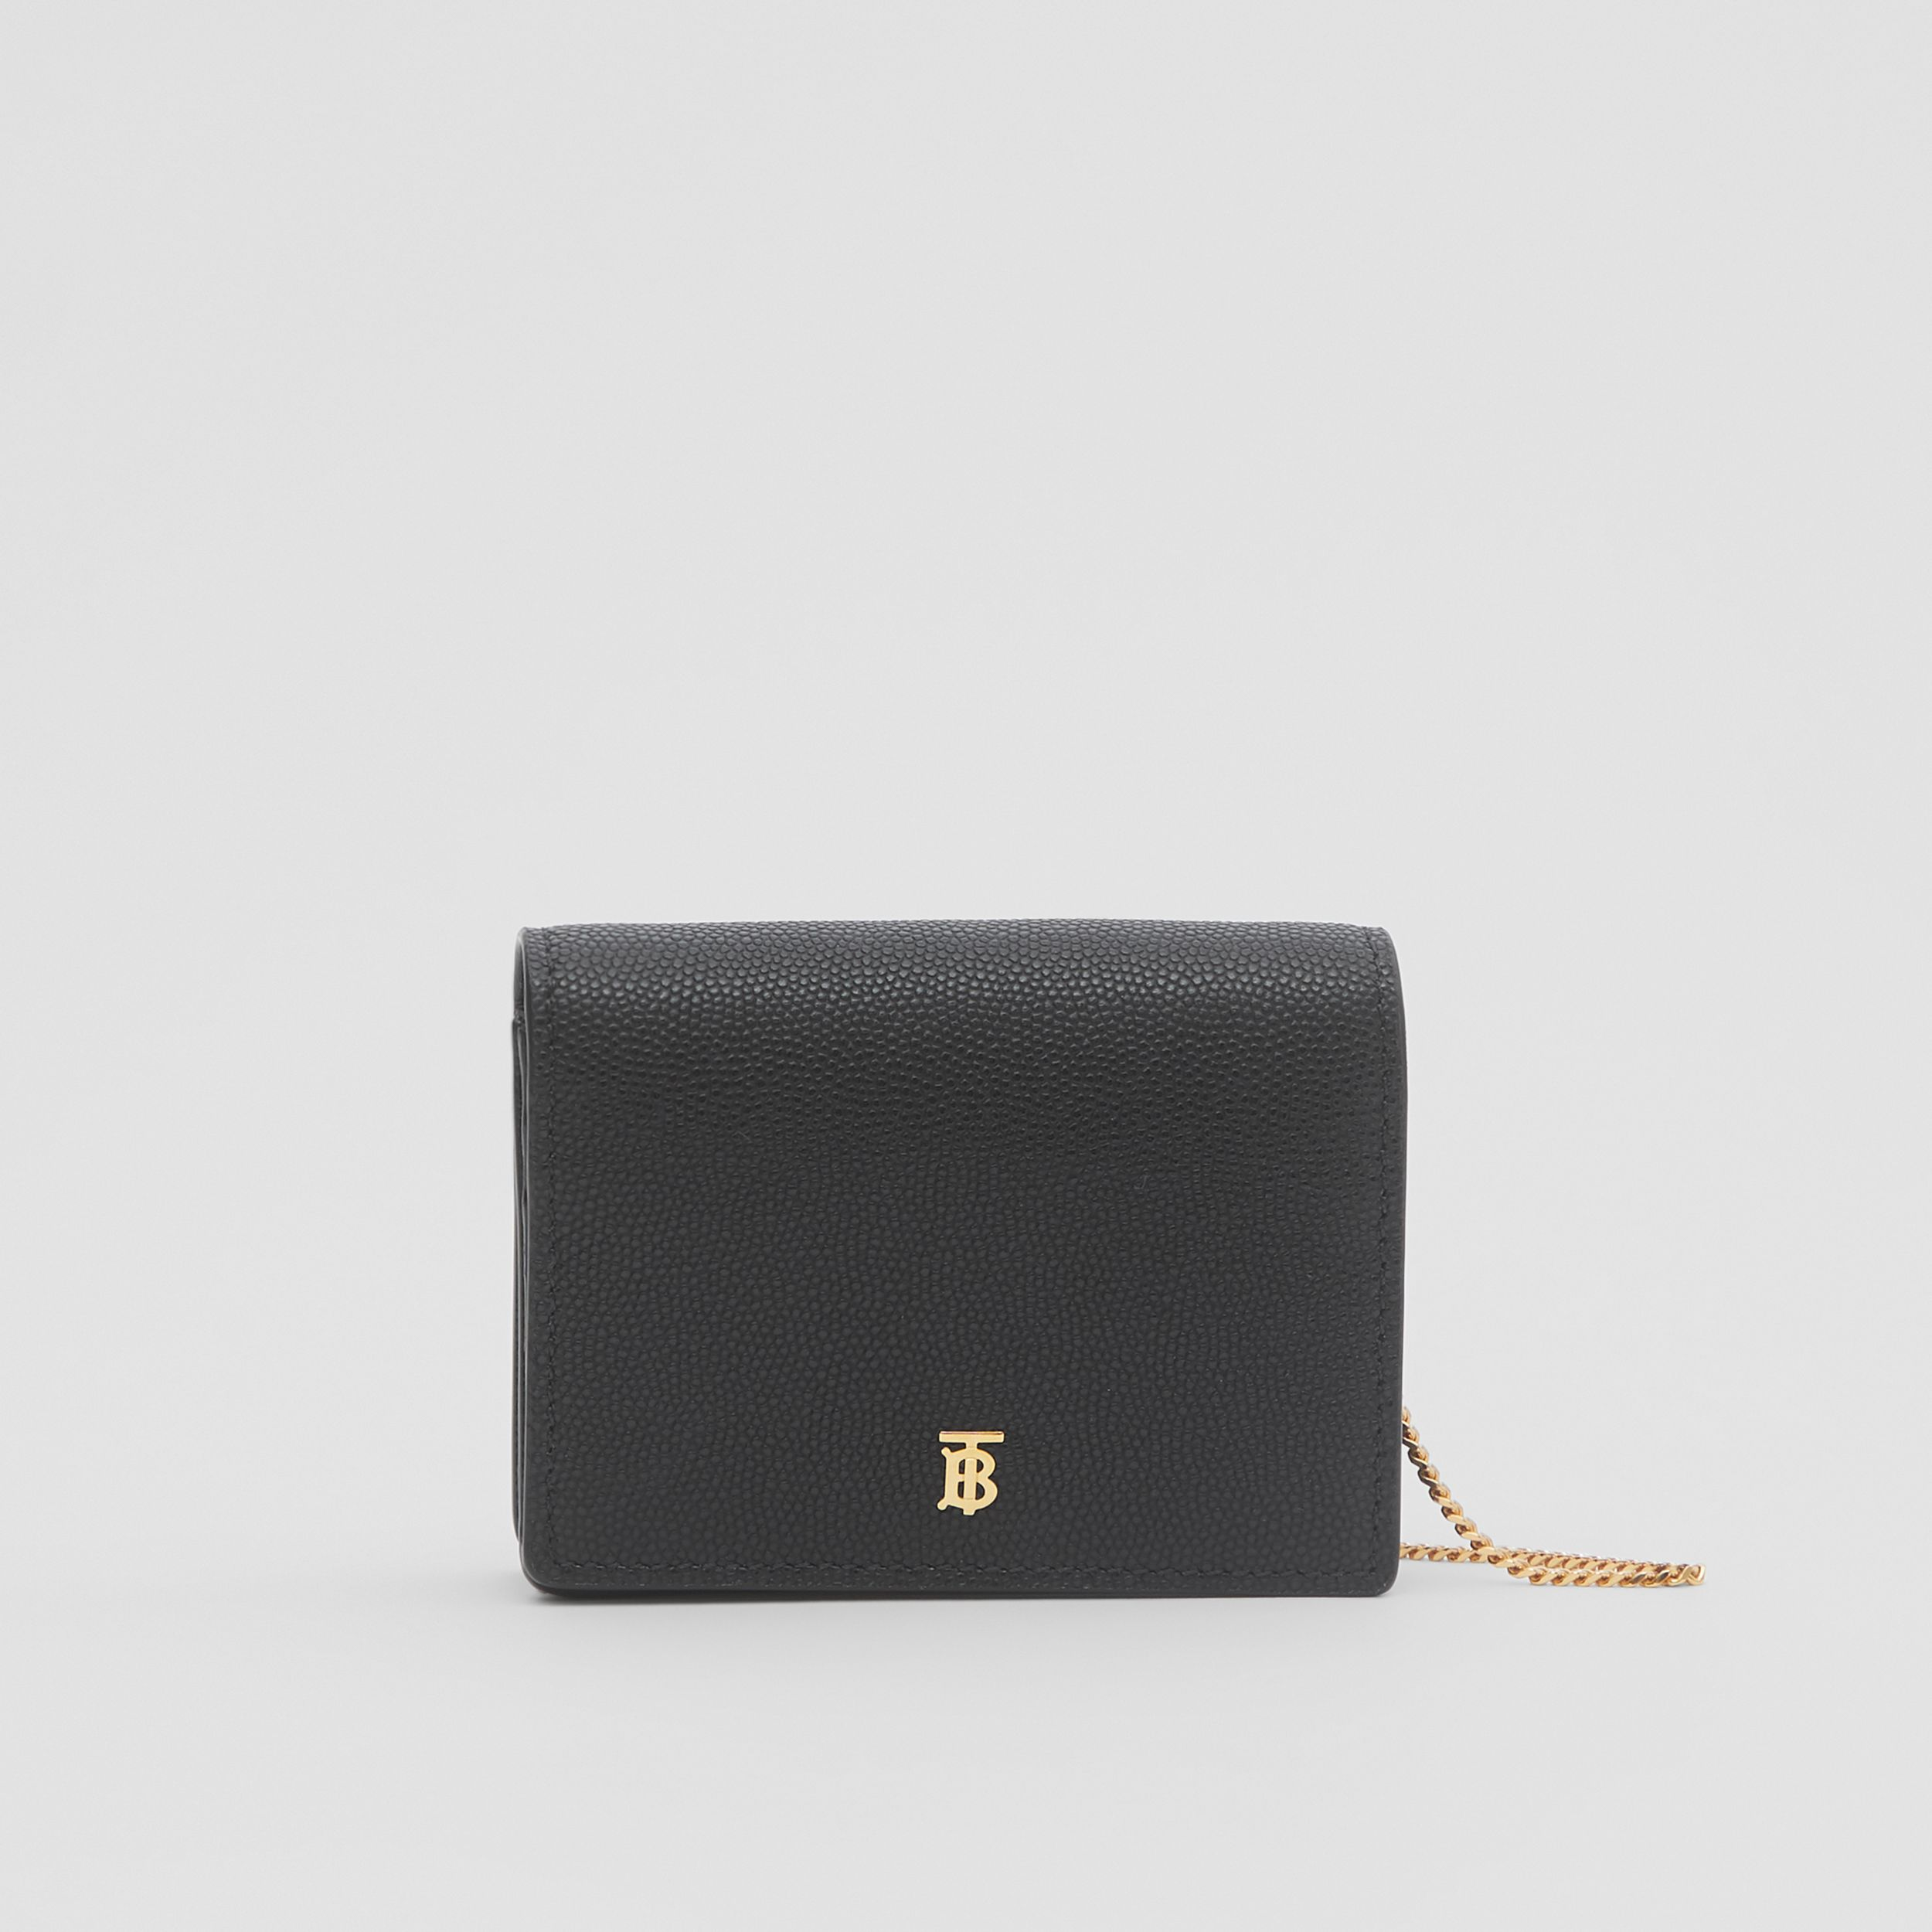 Grainy Leather Card Case with Detachable Strap in Black - Women | Burberry United Kingdom - 1